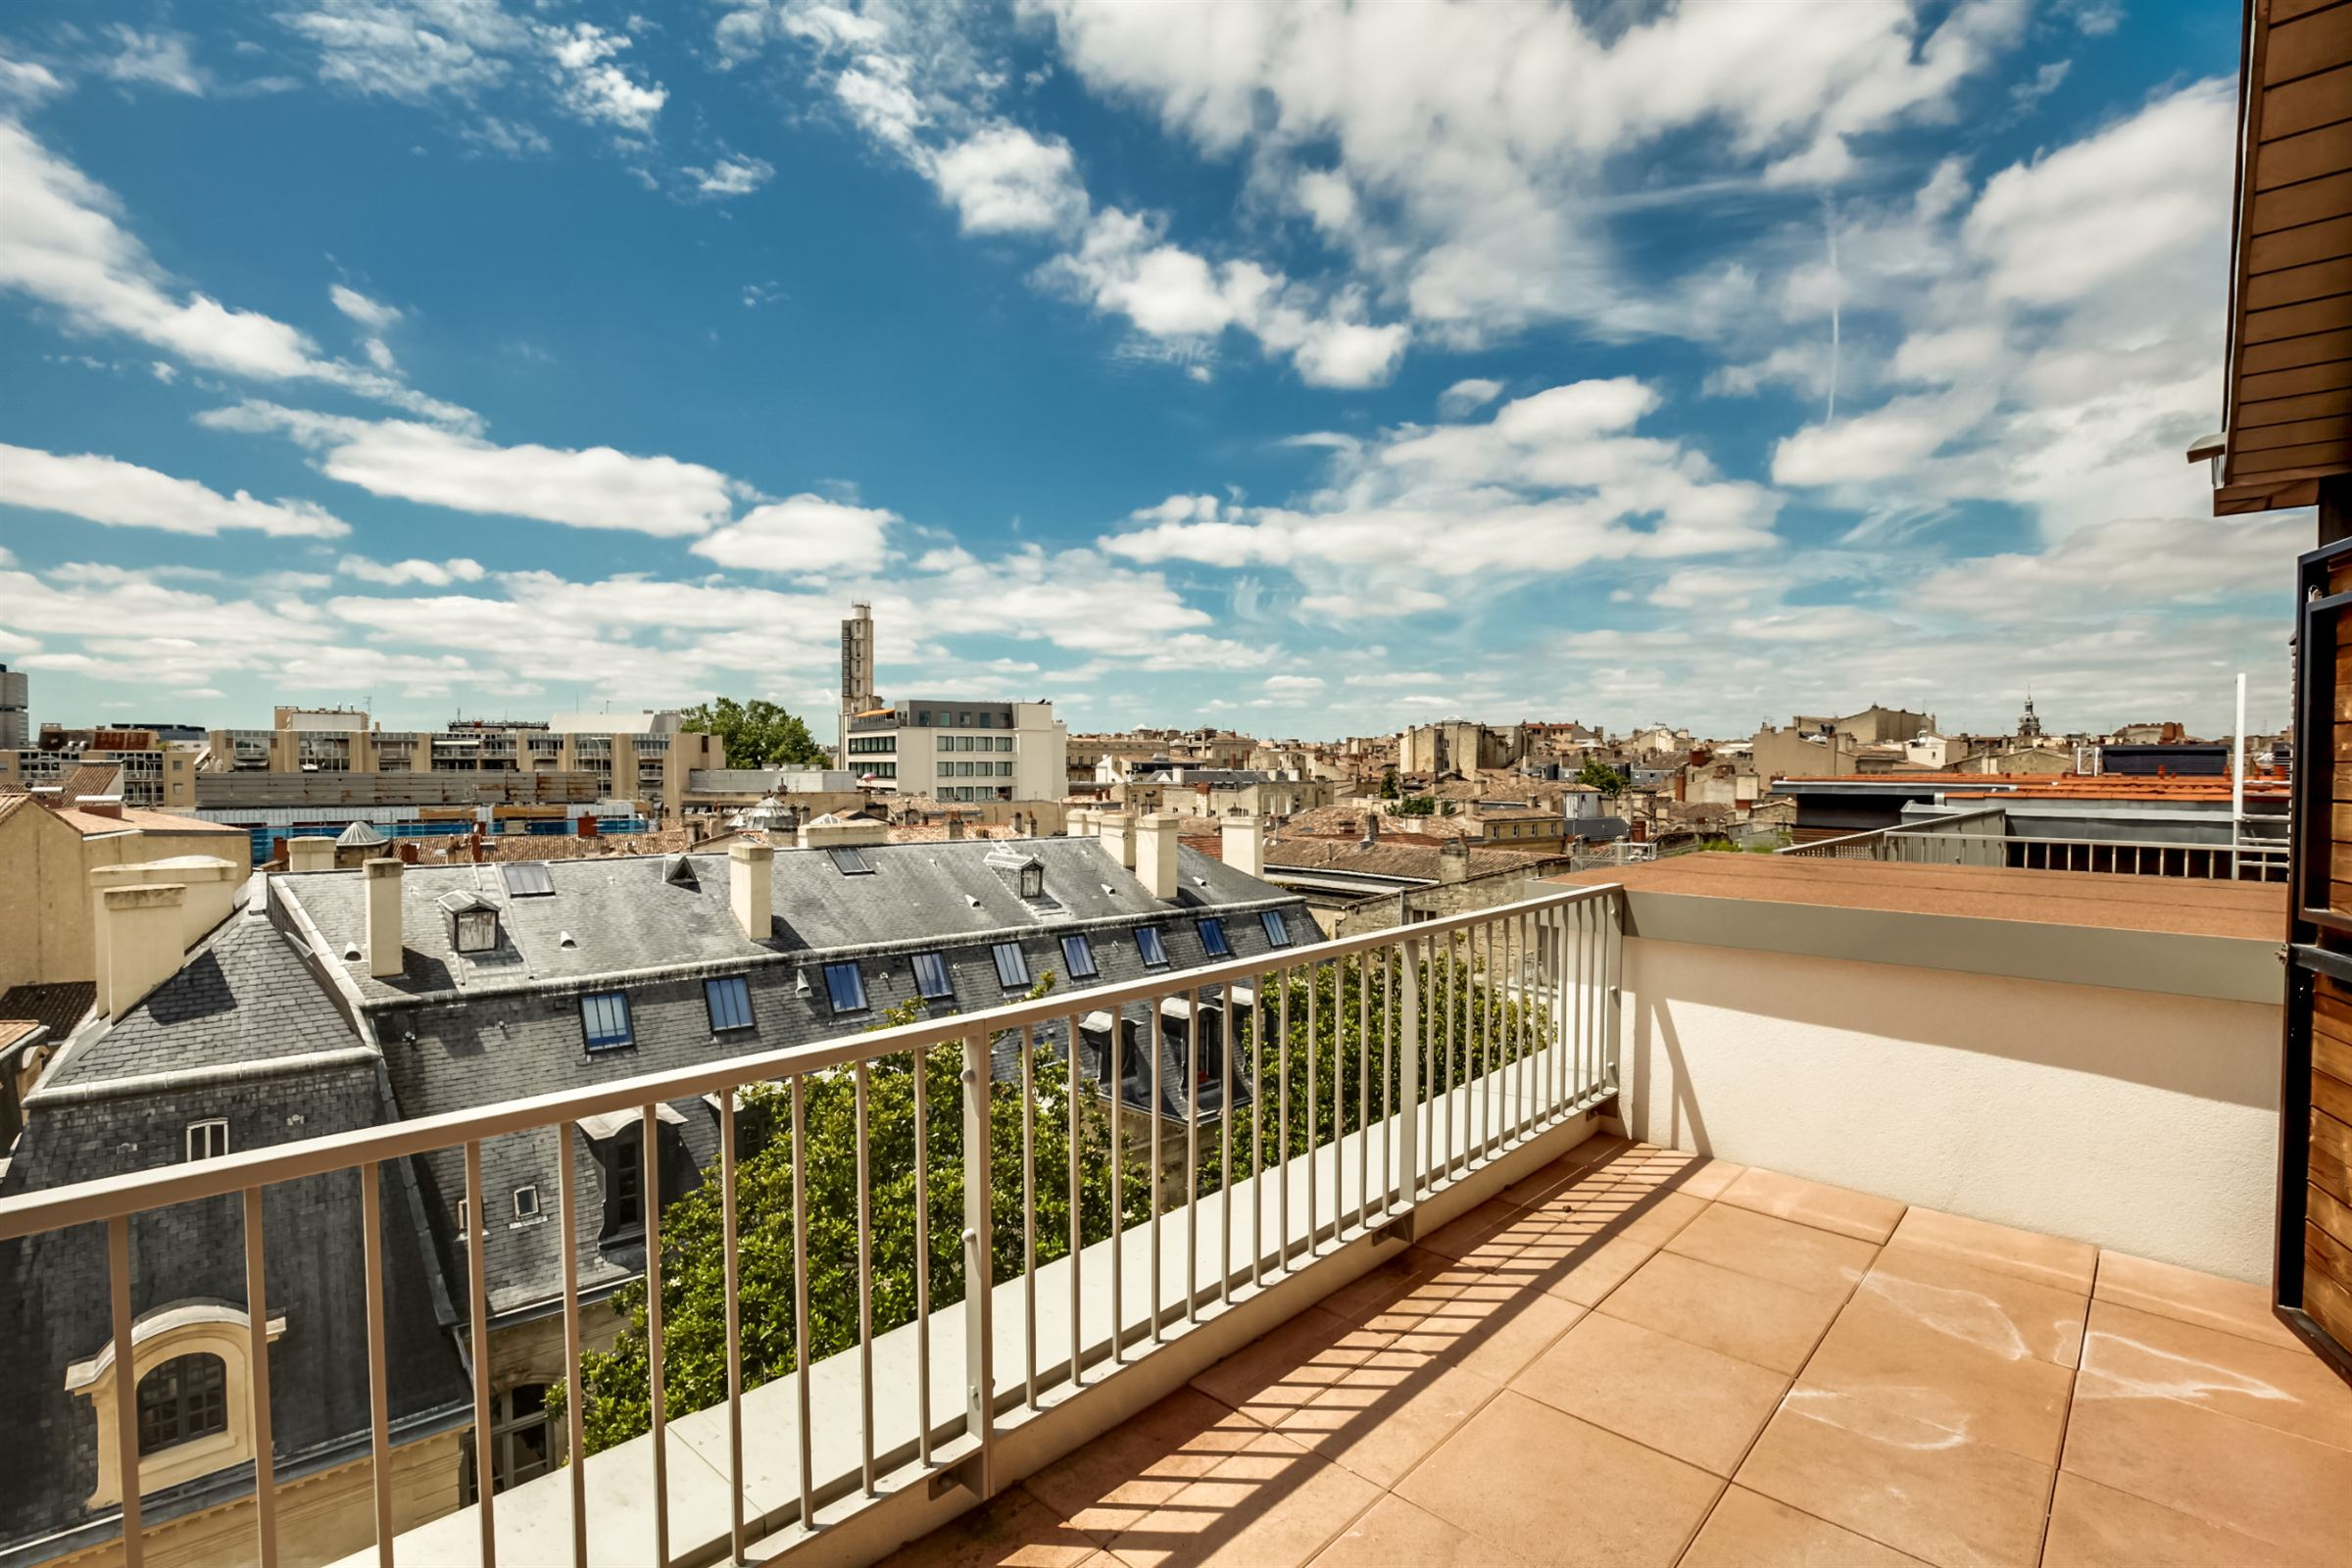 Apartment for Sale at BORDEAUX - PERFECT APARTMENT WITH PARKING IN THE VERY HEART OF THE CITY Bordeaux, Aquitaine, 33000 France